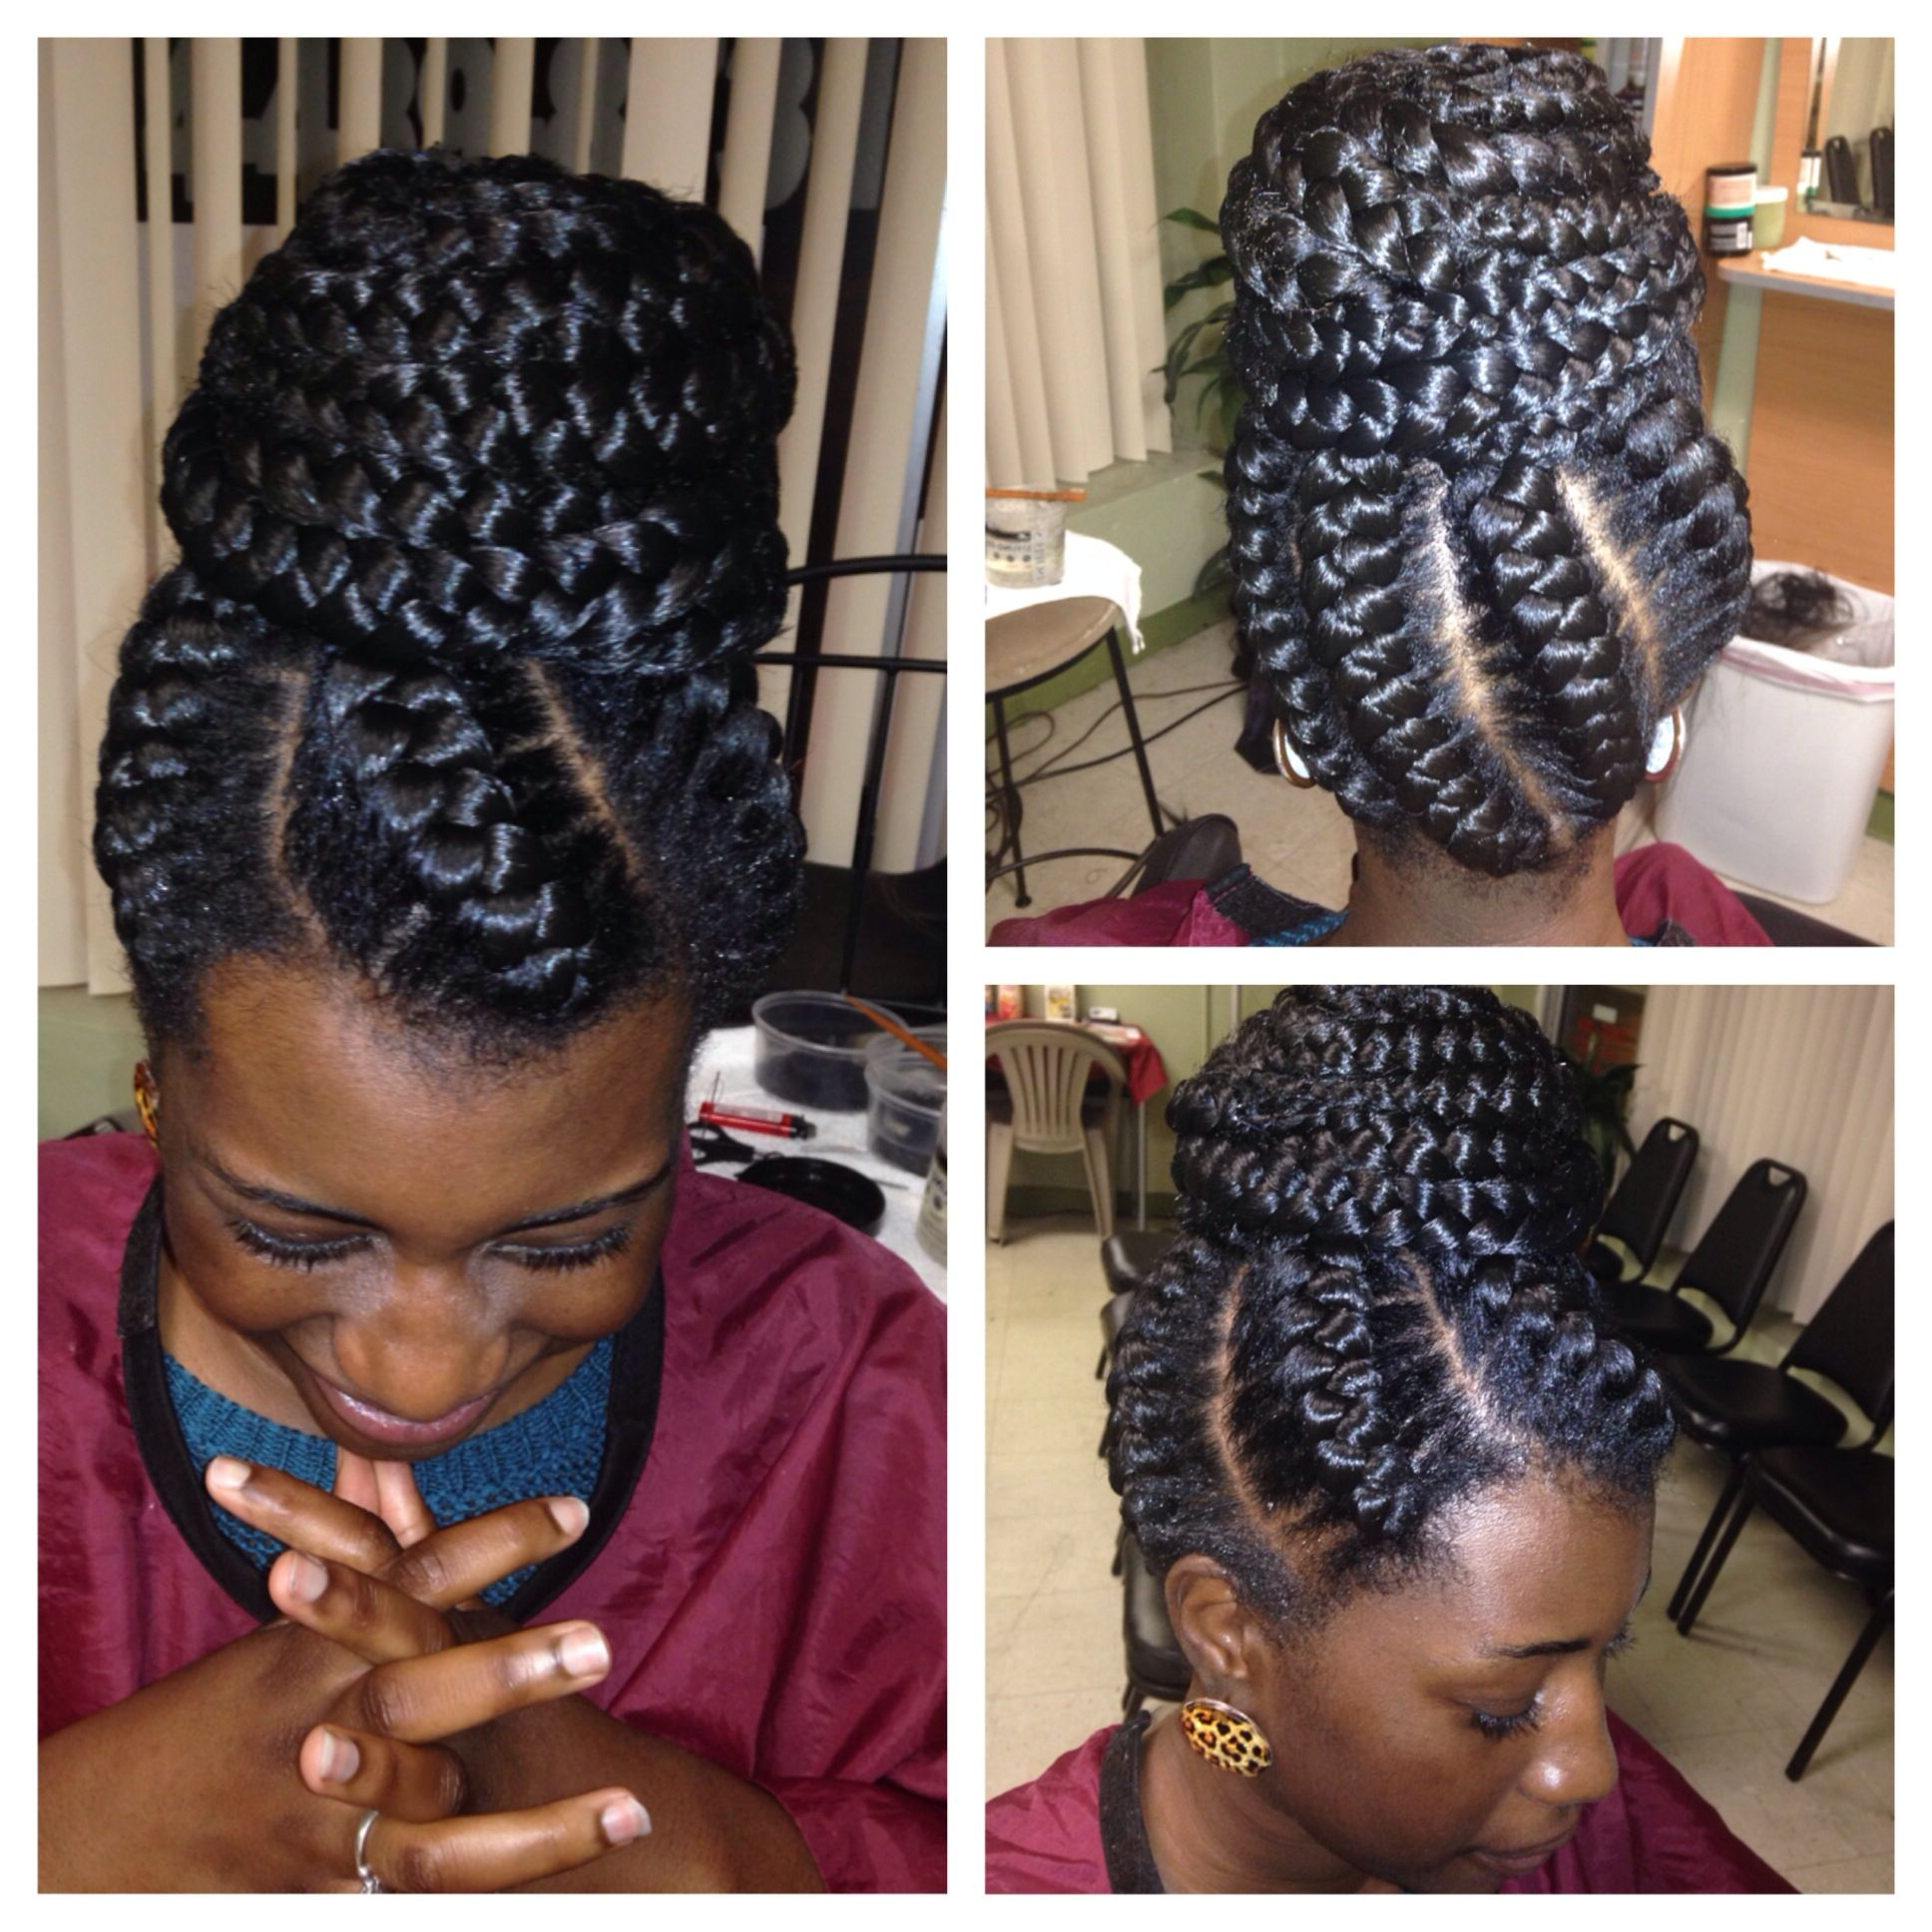 Big Cornrow Braids In A Buns Styles (View 2 of 20)